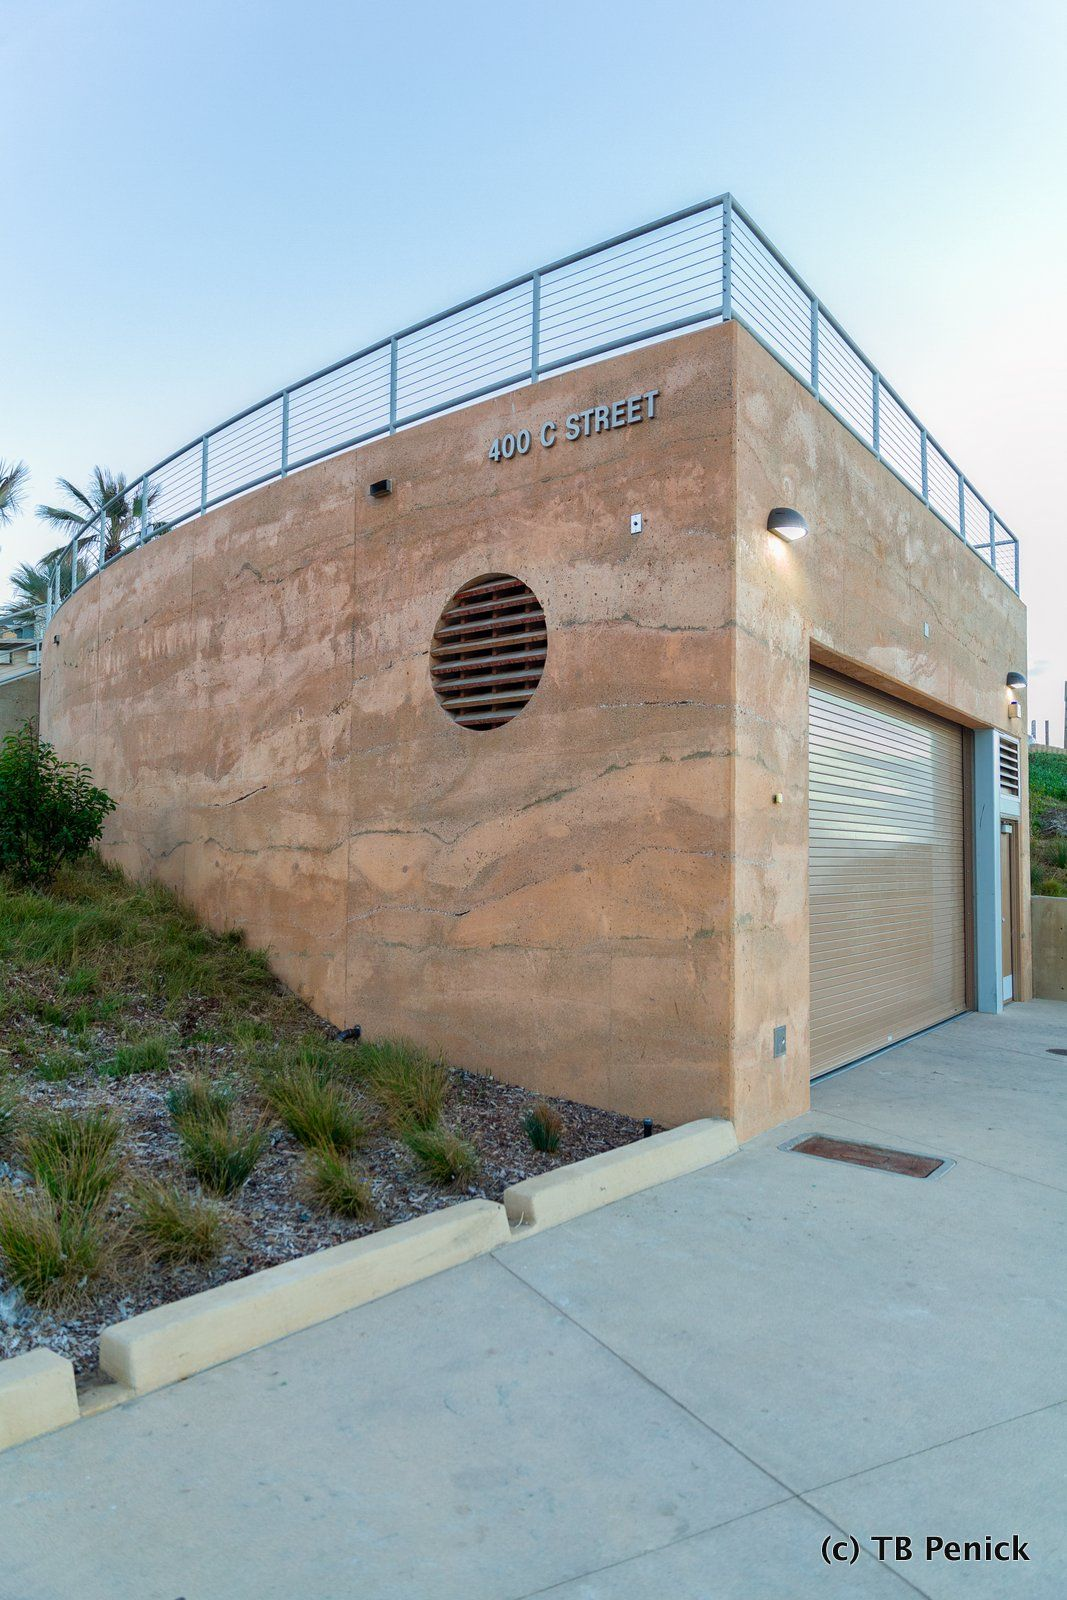 Decorative Concrete Sedimentary Walls Installed By Dcc Member Tb Penick At Moonlight Beach In California Concrete Decor Exterior Decorative Concrete